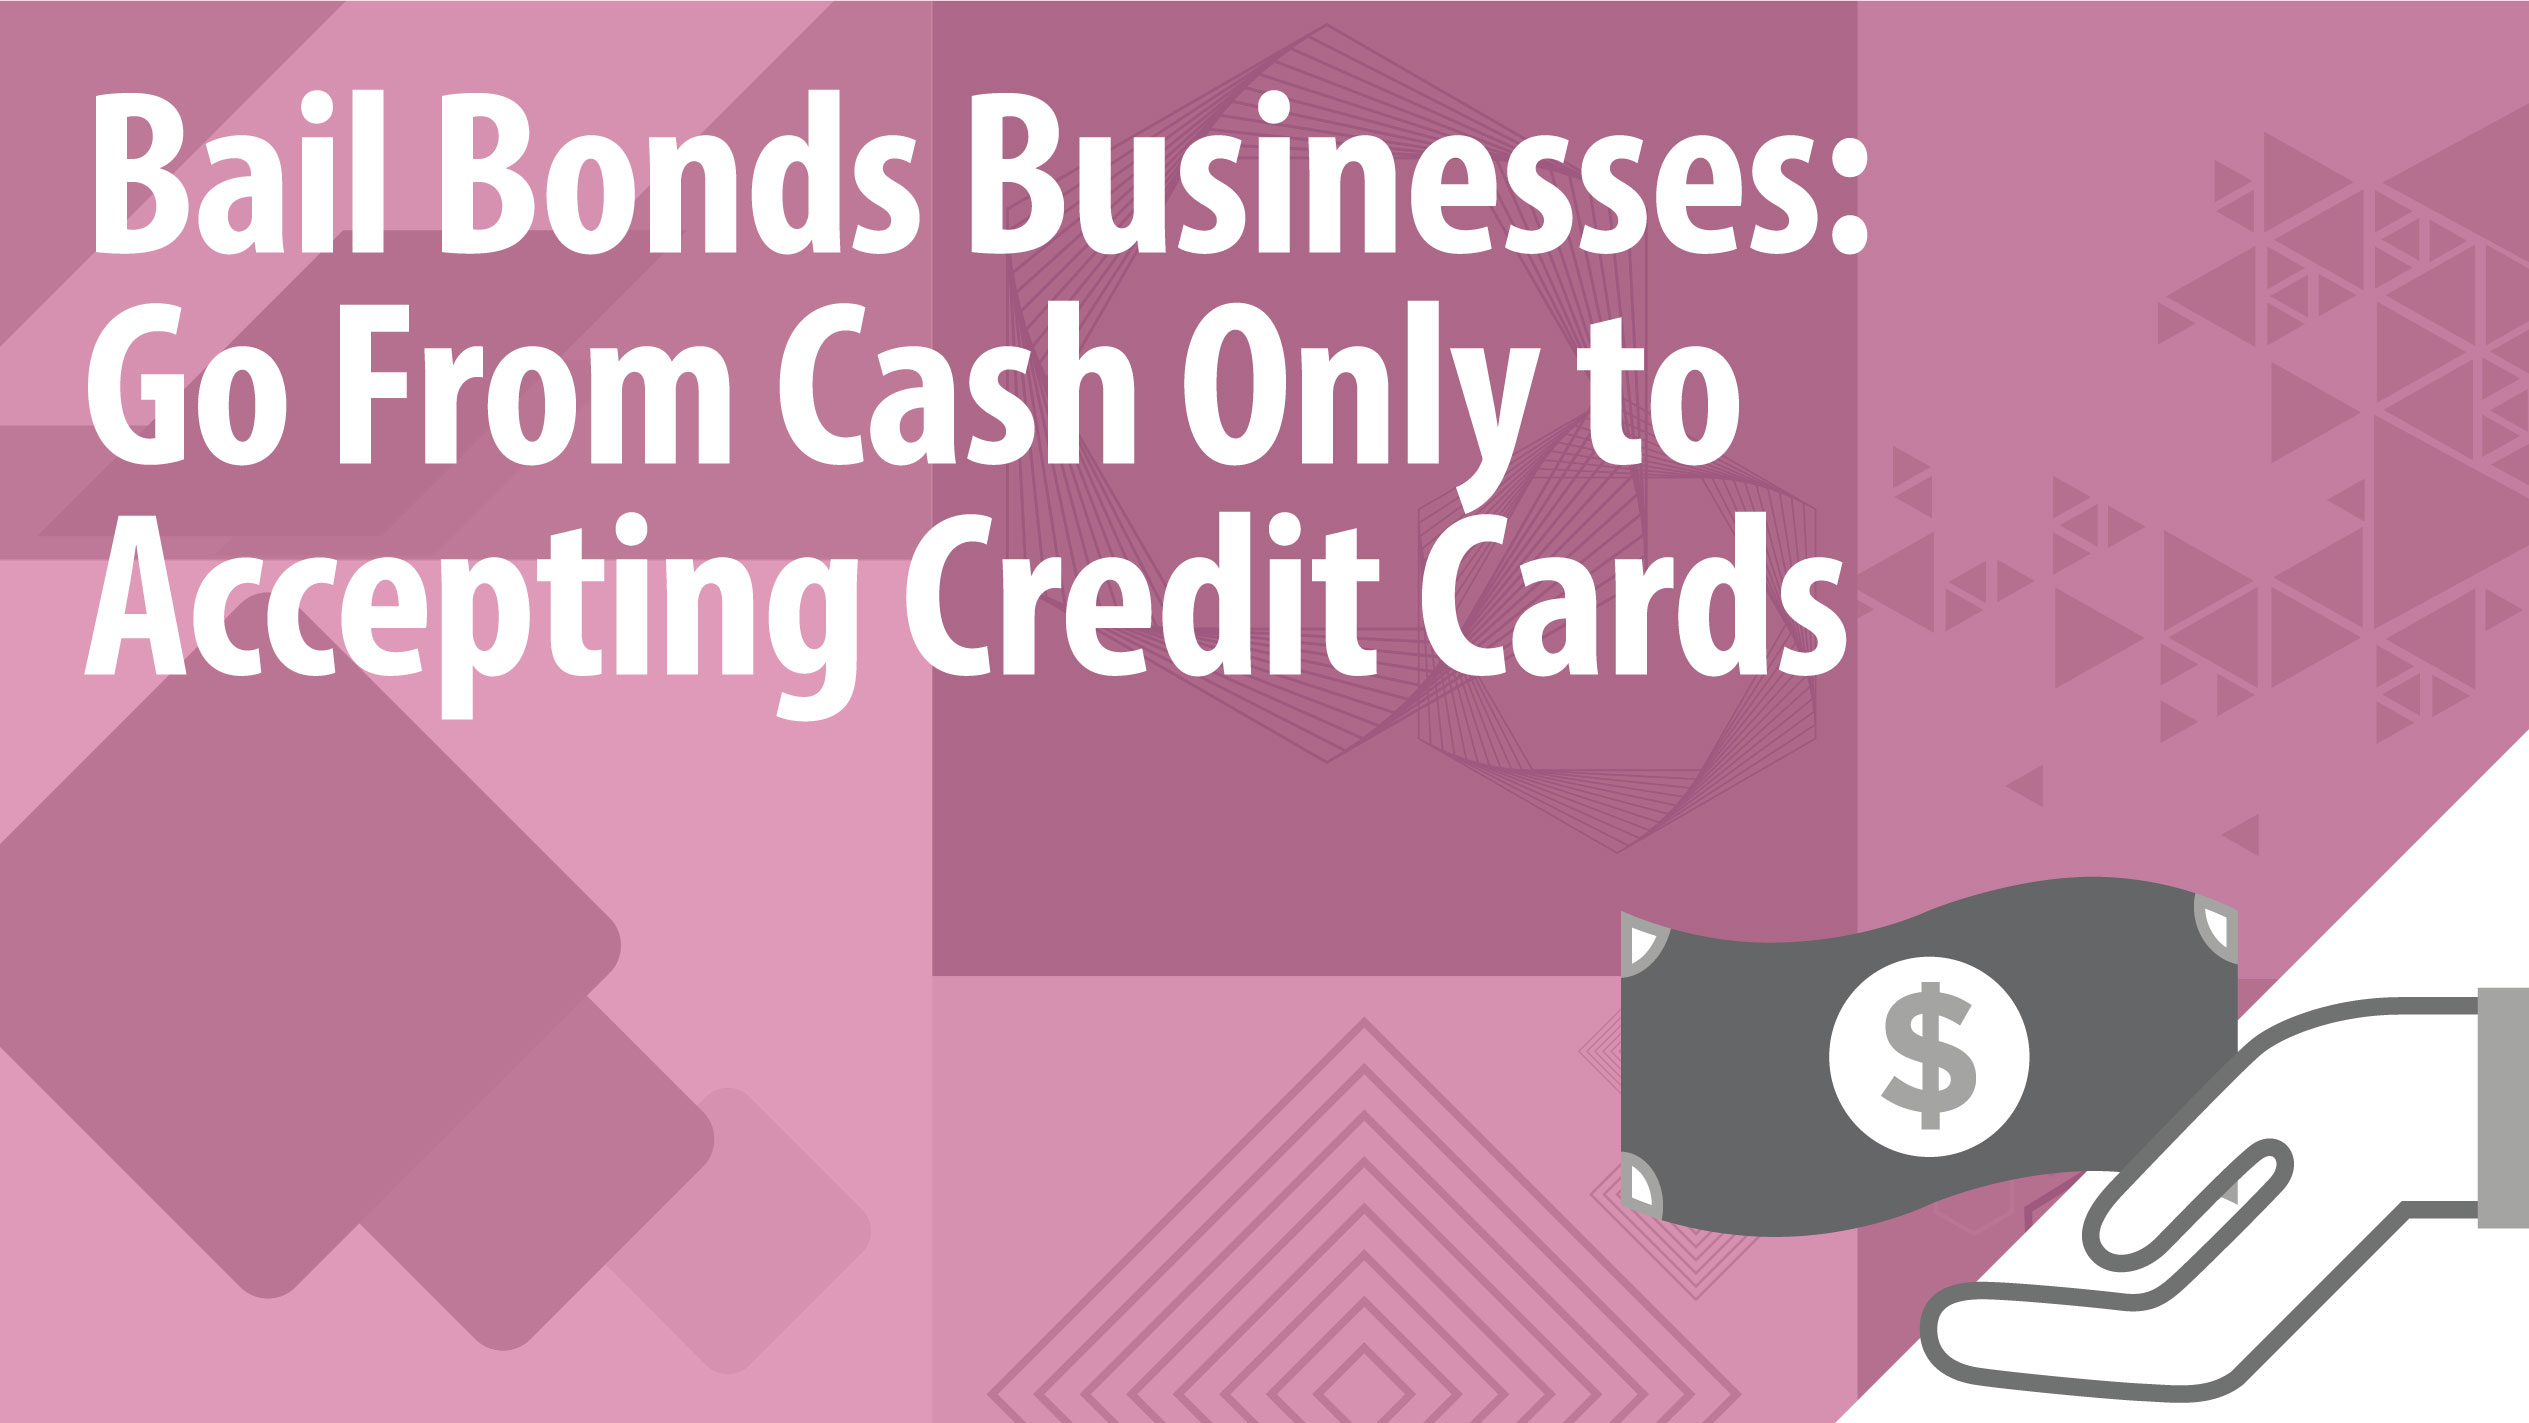 Bail Bonds Businesses: Go From Cash Only to Accepting Credit Cards